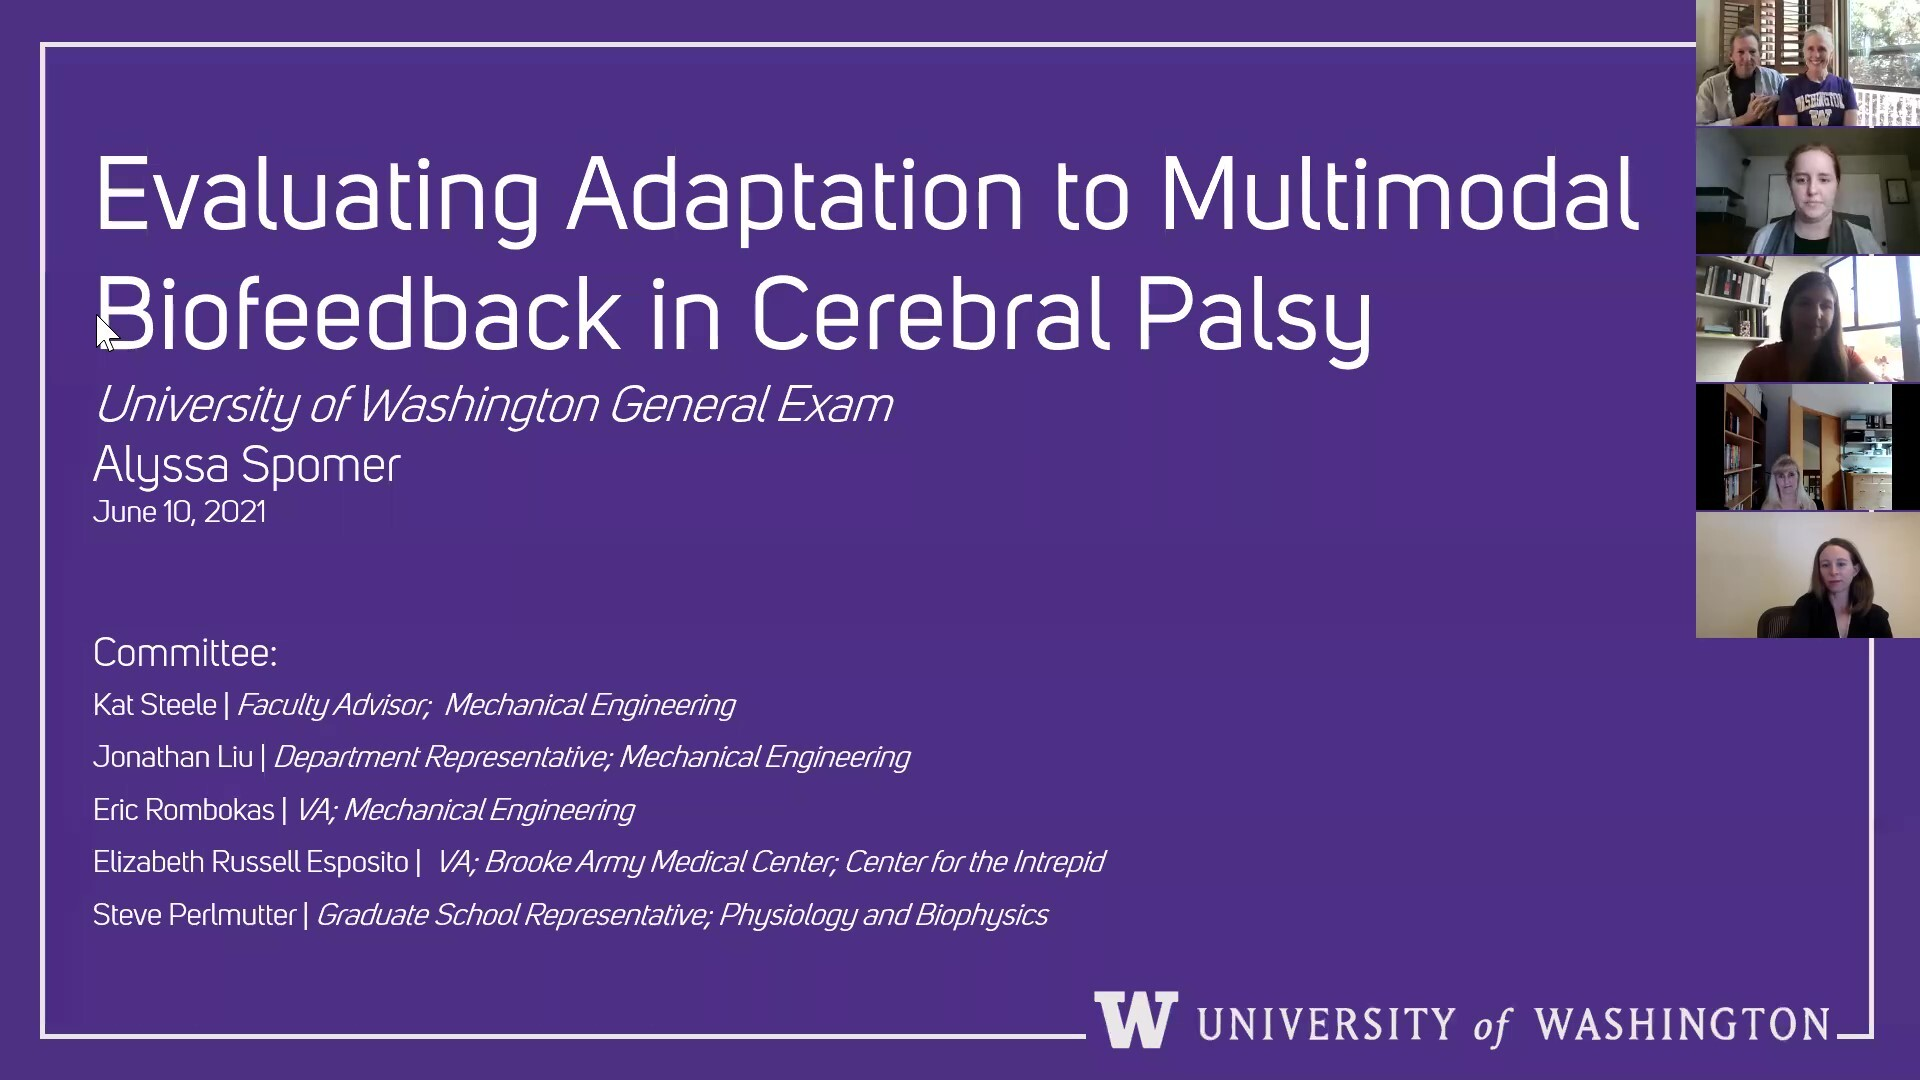 """A screenshot of a purple powerpoint slide with the title """"evaluating adaptation to multimodal biofeedback in cerebral palsy"""""""